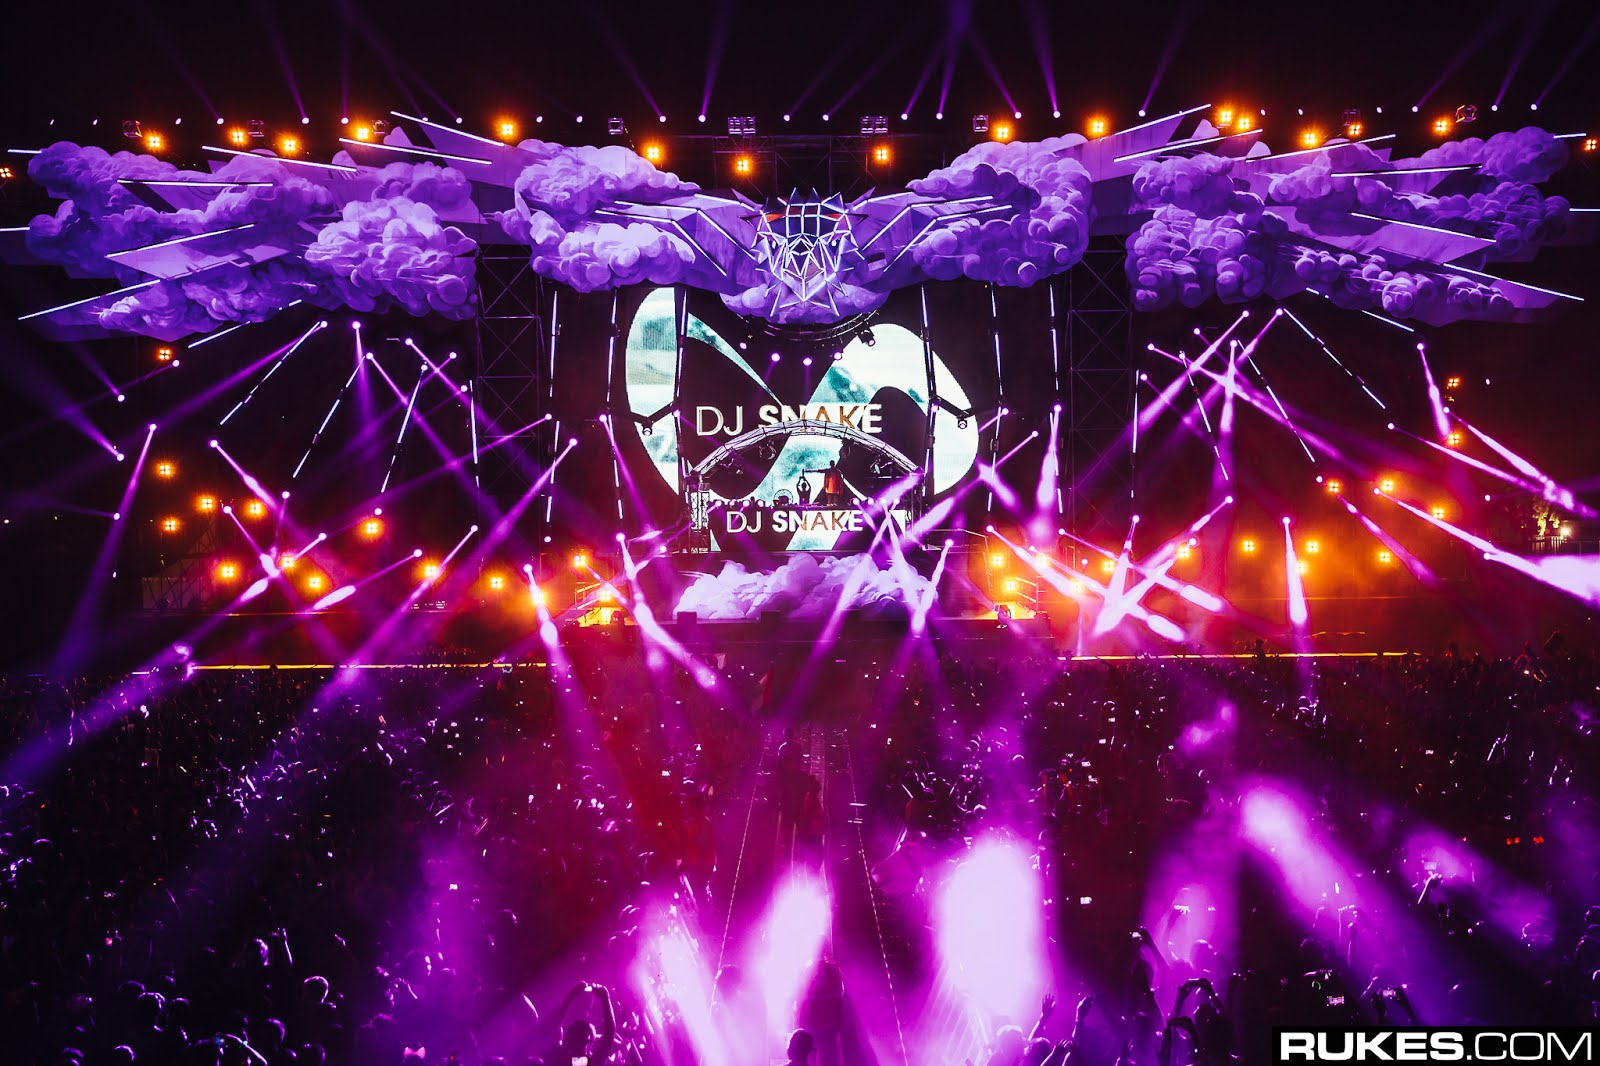 Dwp Edm Access Tiket Djakarta Warehouse Project 2017 2 Day Pass Close Out 2016 With A Bang At Comment Down Below If Youre Attending Or One Of The Other 4 Fests